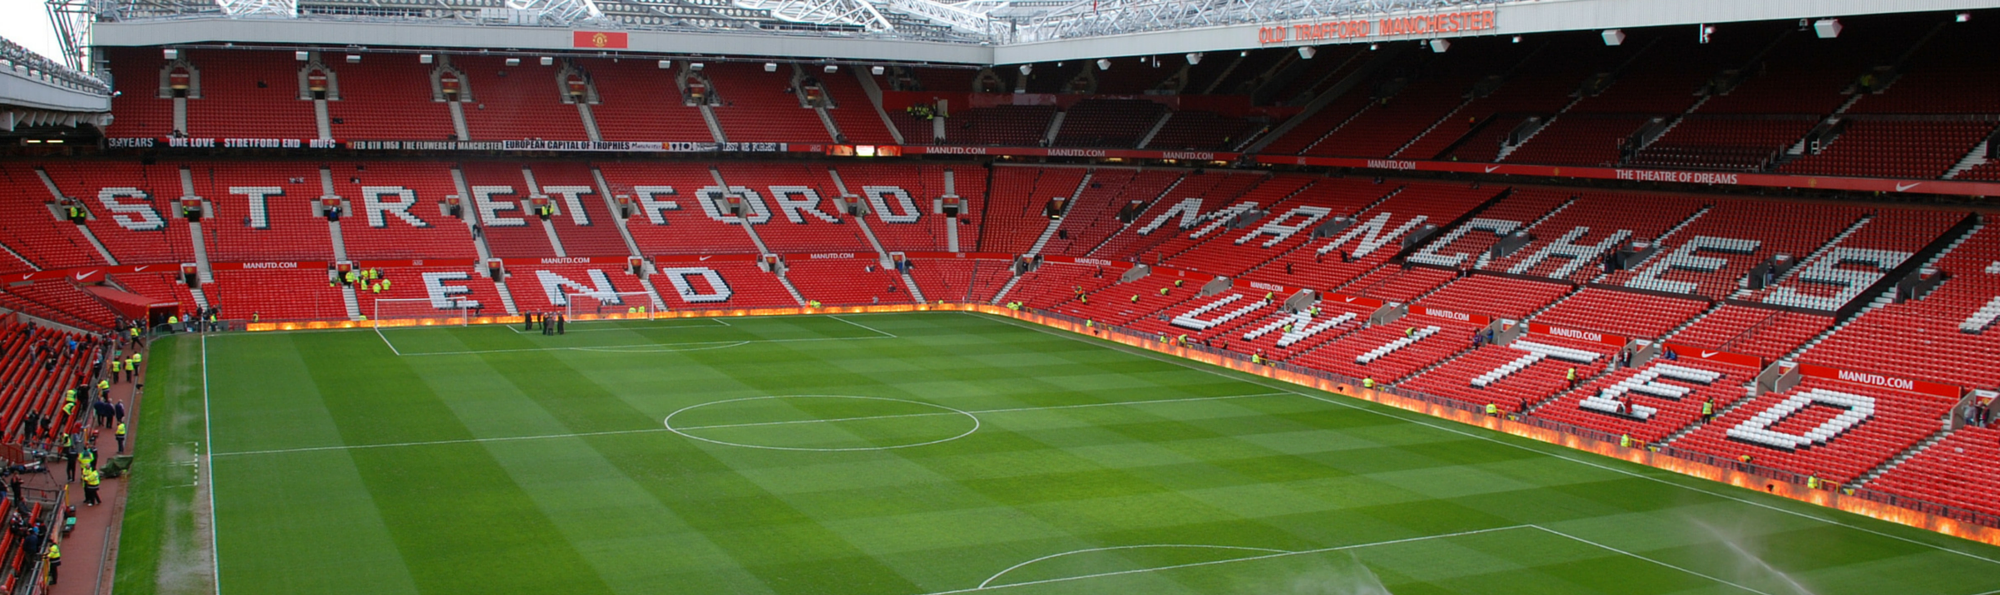 Old Trafford, The Theatre of Dreams